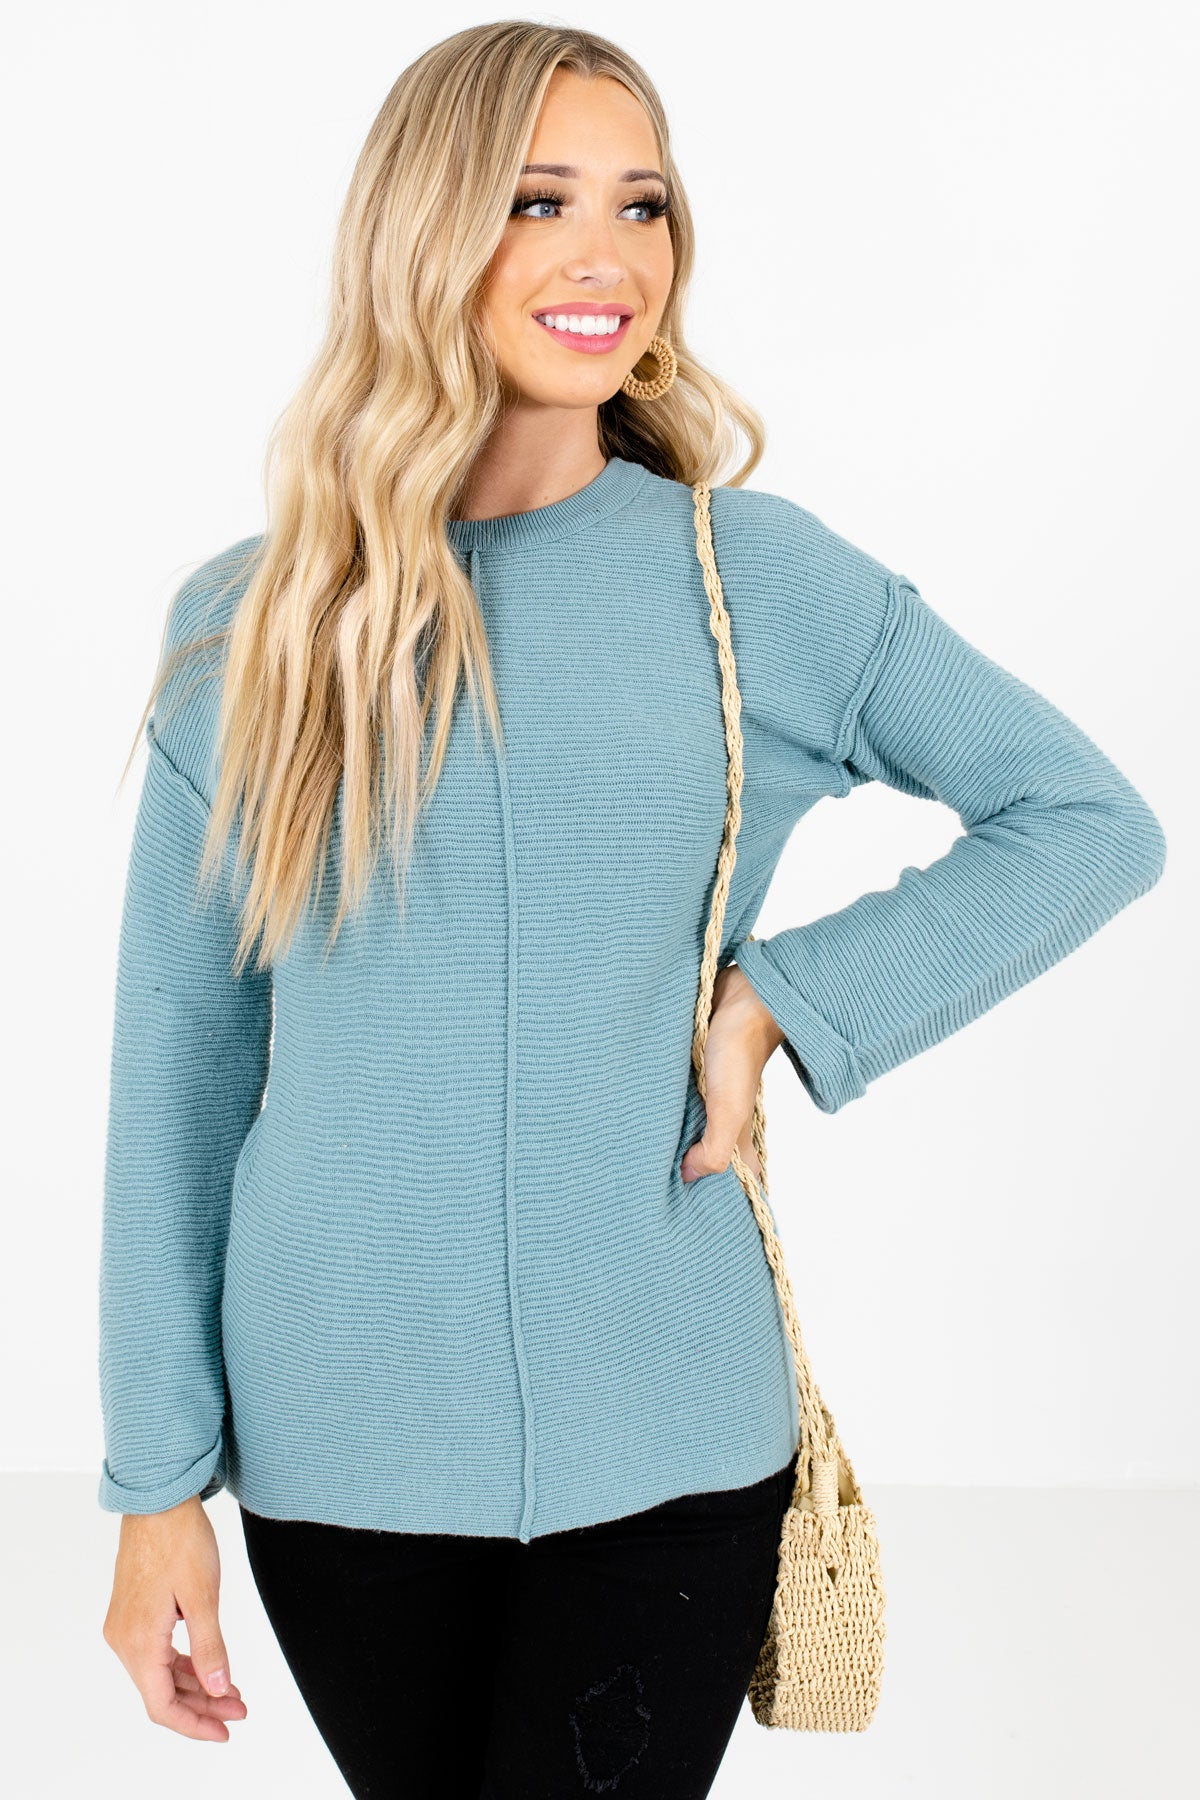 Blue High-Quality Ribbed Knit Material Boutique Sweaters for Women